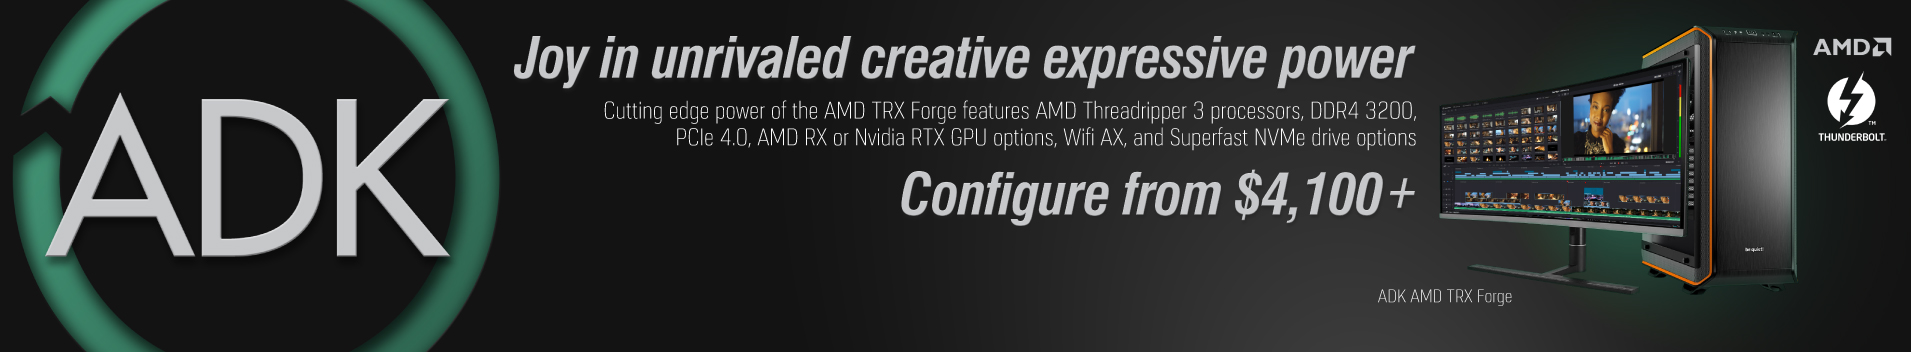 ADK TRX Forge. The ultimate 4k, 5K, 6K, and 8K Motion Graphics Digital Video Workstation Based on AMD's TRX40 Chipset and latest Ryzen 3rd Generation Threadripper processors.